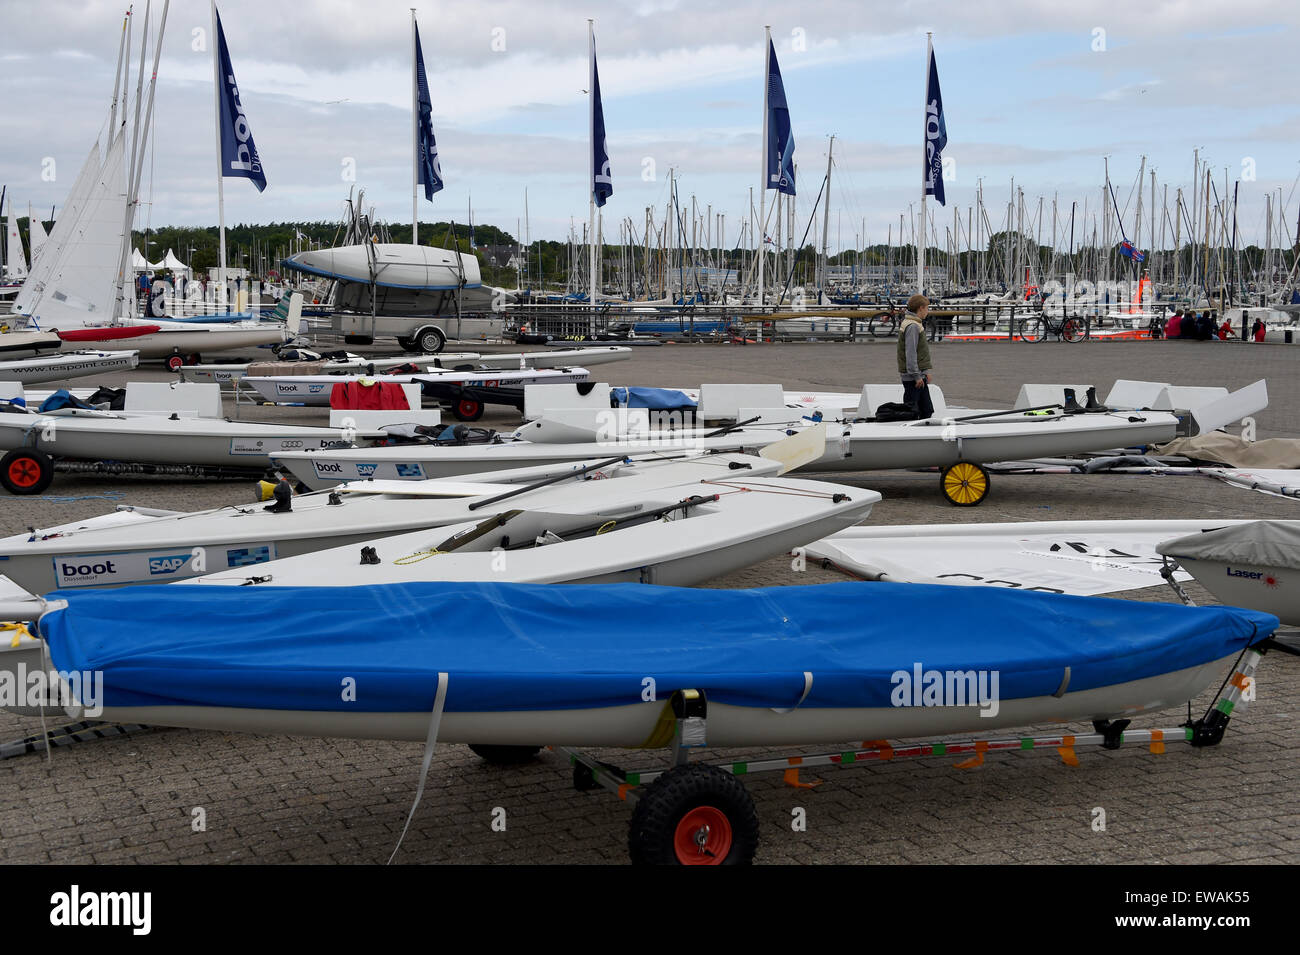 Kiel, Germany  21st June, 2015  Competition boats stand on